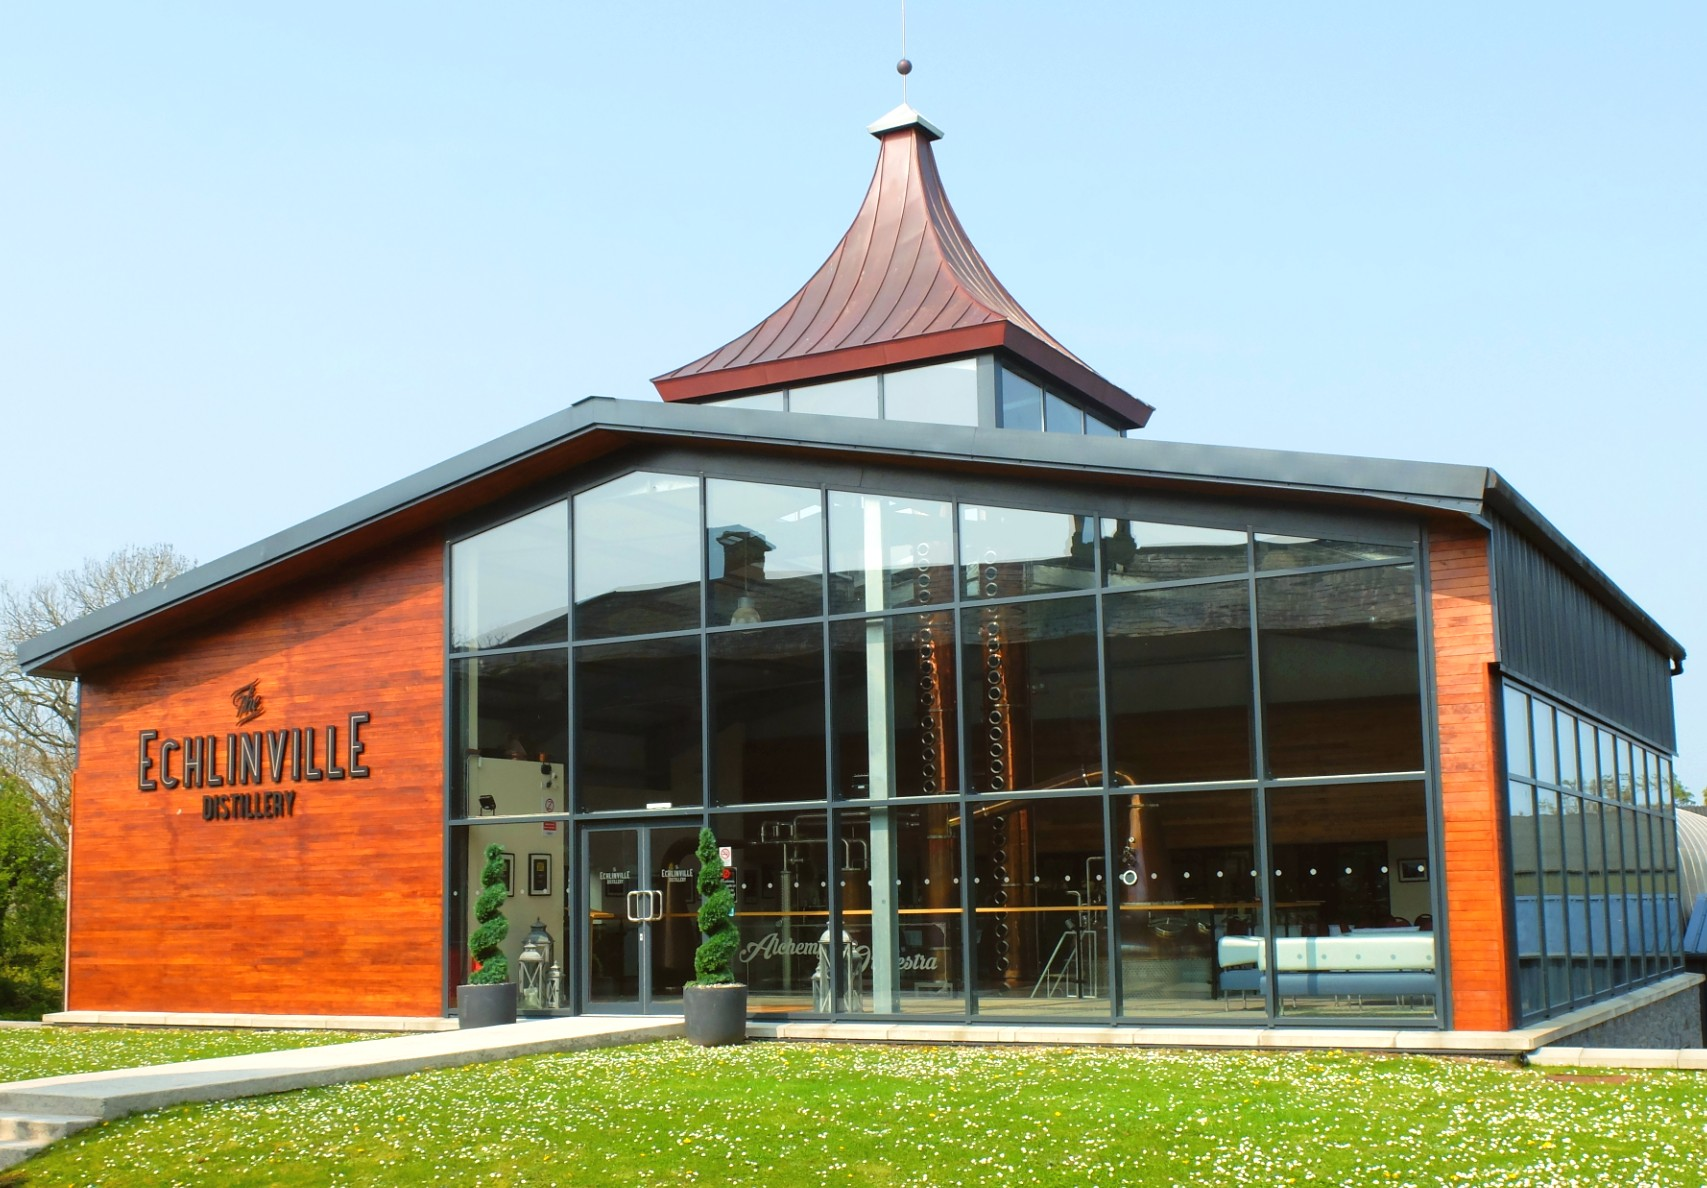 The Echlinville Distillery Stillhouse